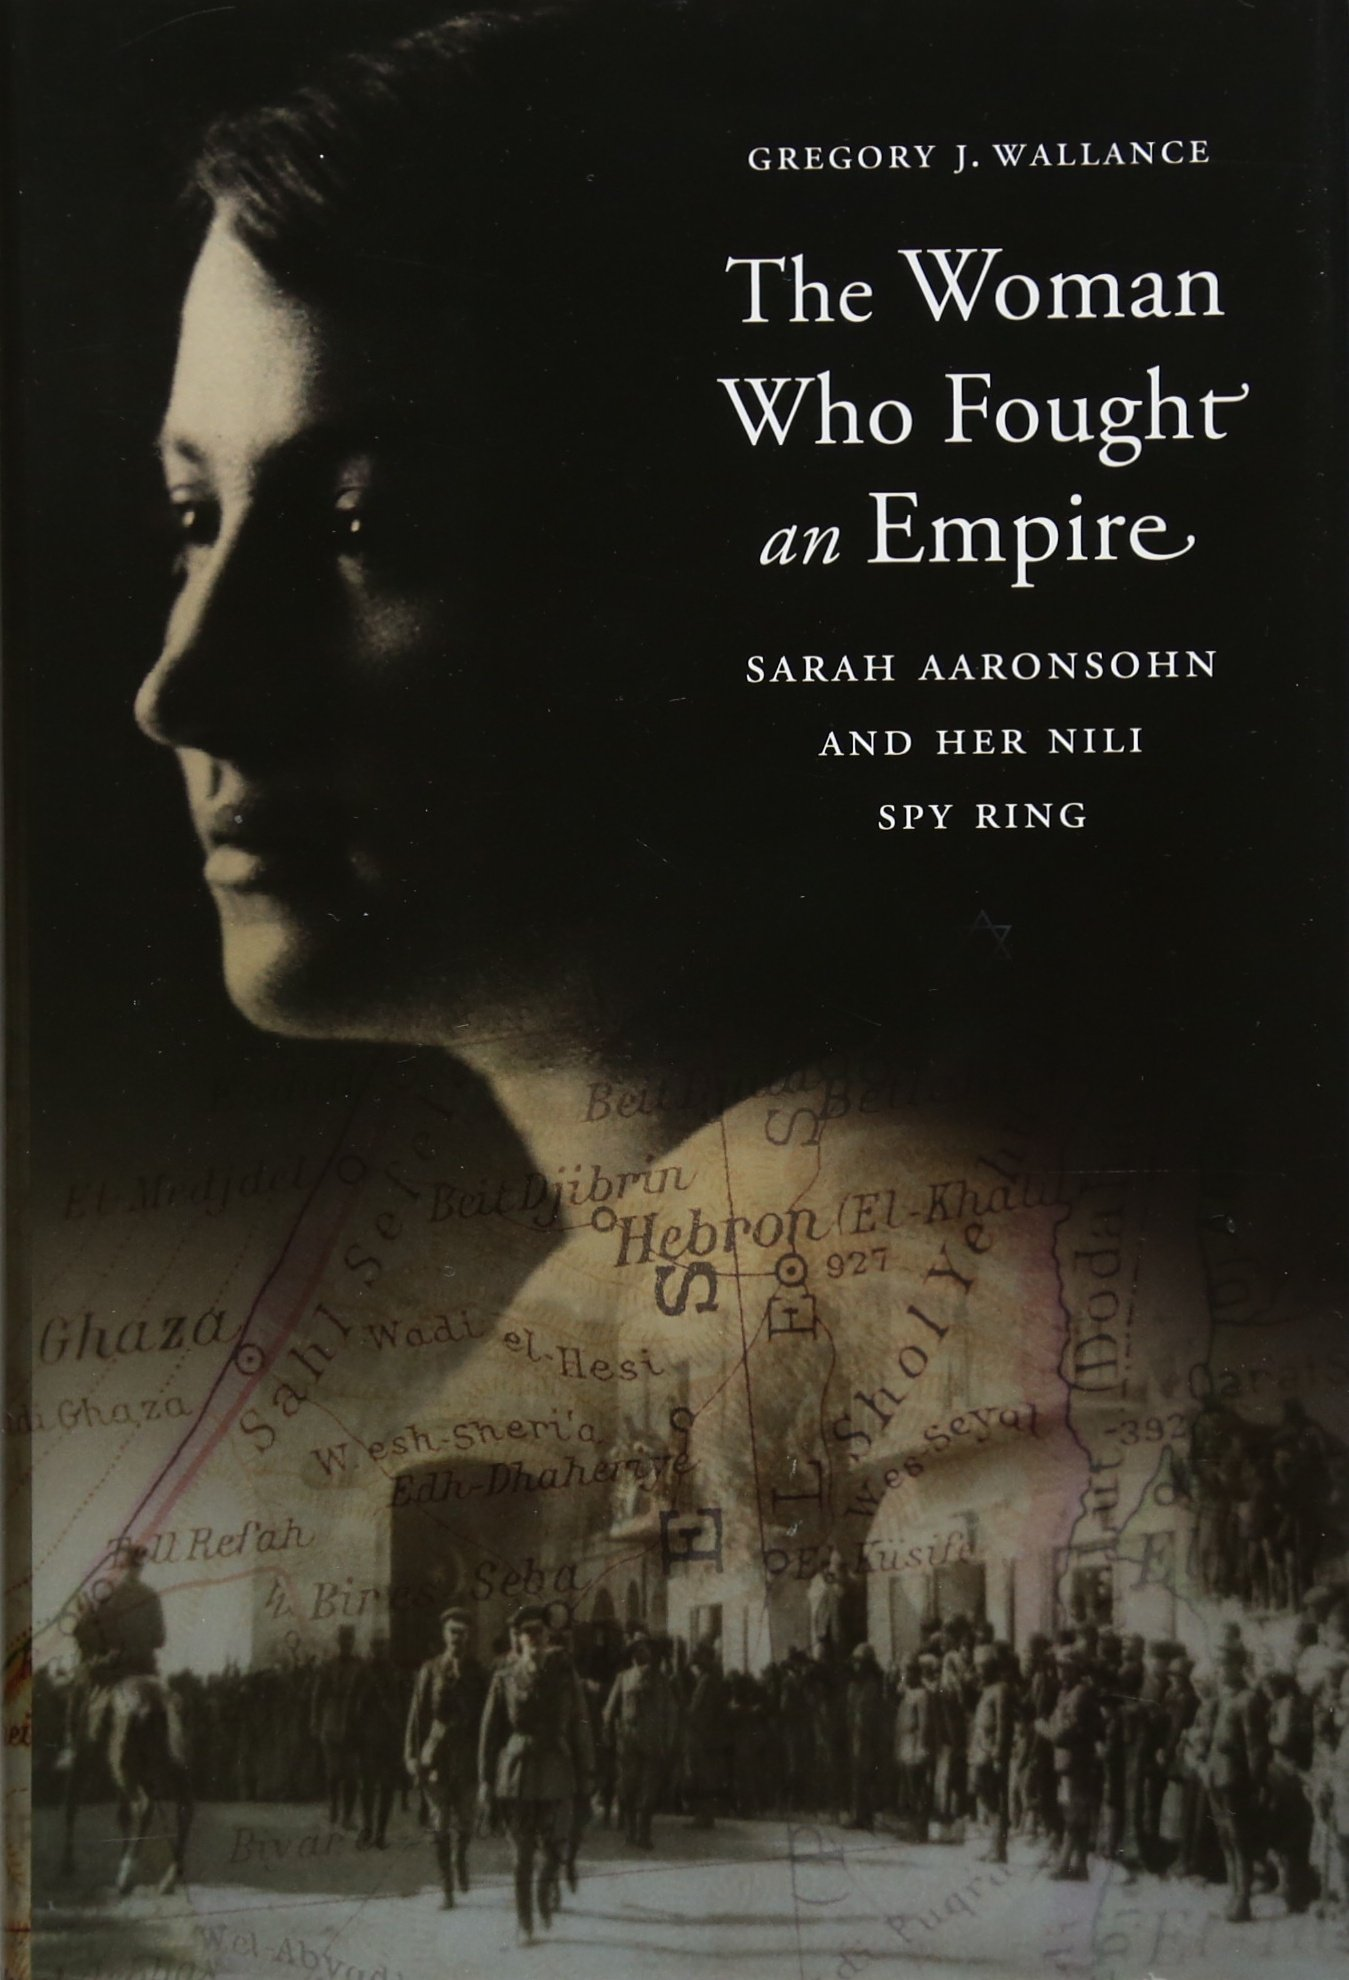 the-woman-who-fought-an-empire-sarah-aaronsohn-and-her-nili-spy-ring